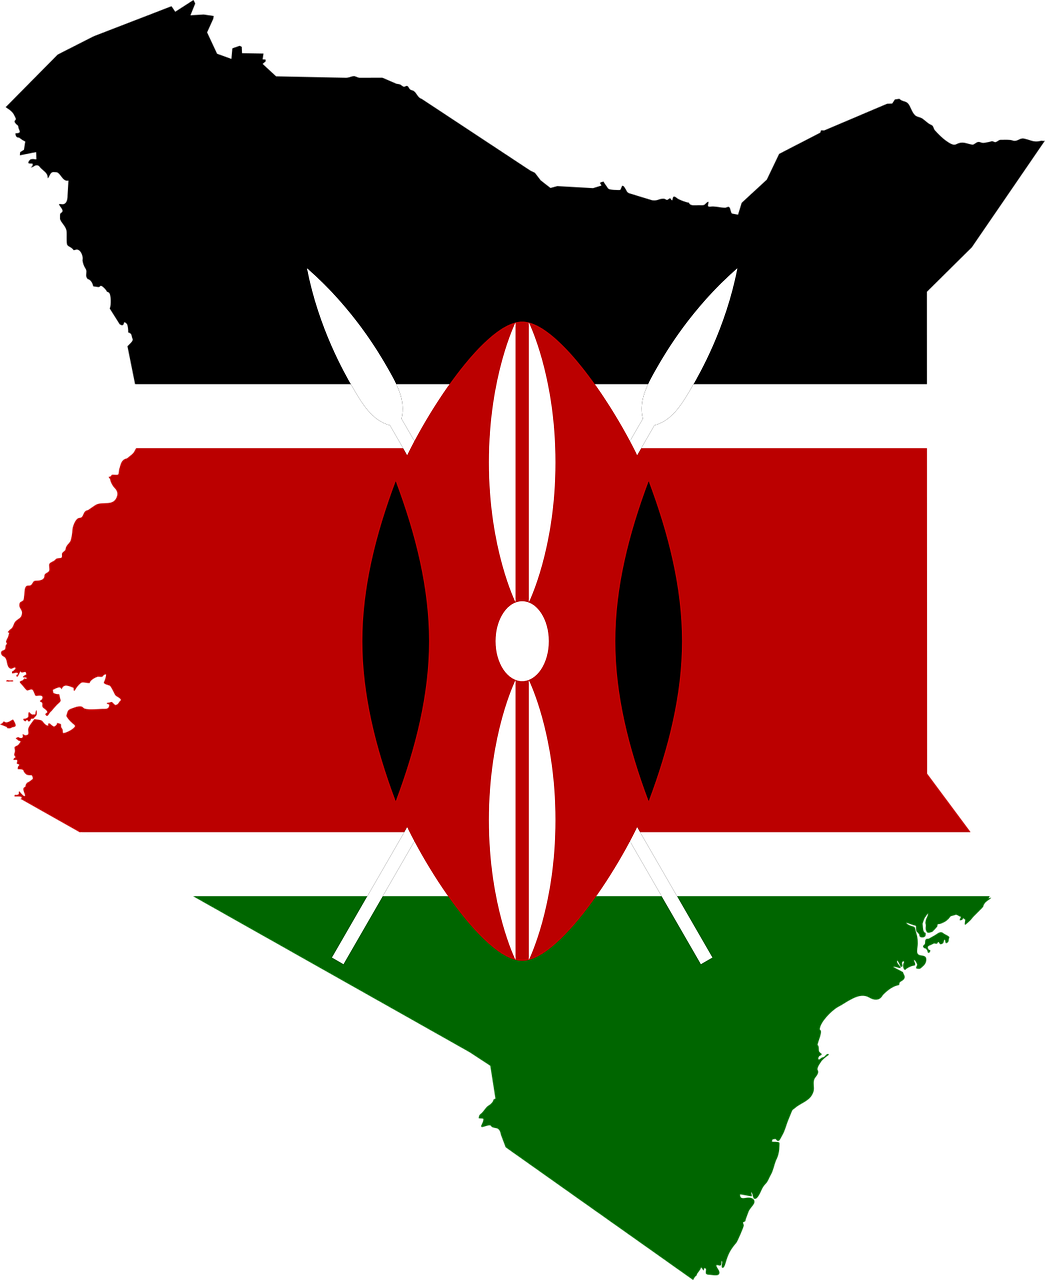 Country Context: Kenya